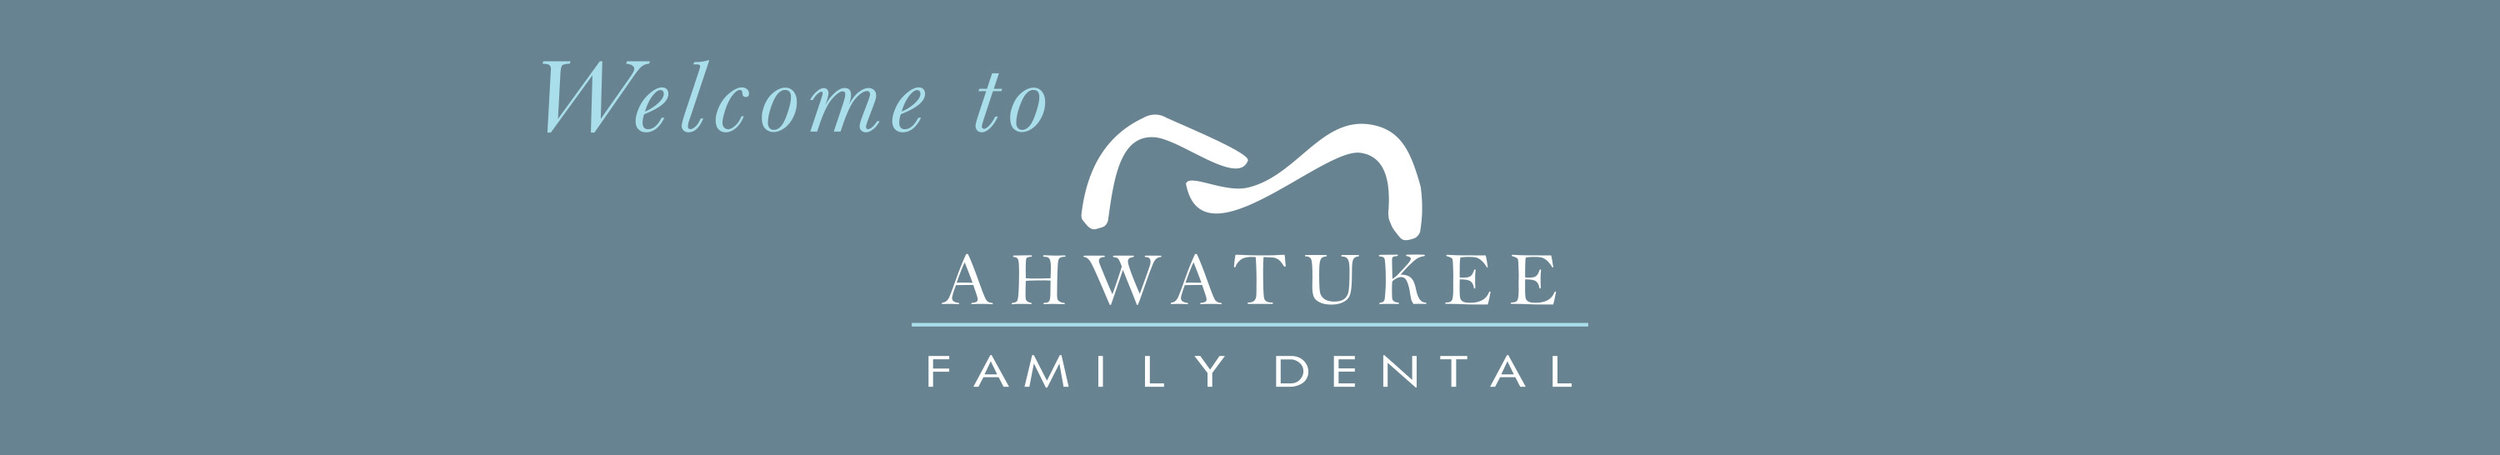 At Ahwatukee Family Dental and Fulton Ranch Dental, we look at dentistry differently. Our passion is to provide patients with brighter, healthier smiles through an unmatched level of comfort, care, and efficiency.  By investing in the latest technology and training opportunities available our cosmetic and family dentists,   Dr. Cory Rush   and   Dr. Kyle Rush   have positioned themselves as leaders in the field of dentistry. Both brothers are continuing to establish these practices after the wonderful example and care given by their late father,   Dr. David Rush   as a premier center for comprehensive and affordable care.  Above all else, we value the relationships we create with those who have entrusted us with their smile for 30 years, and we look forward to developing a long-lasting friendship with you and your family in order to keep you smiling for life!  To learn how we can help you maintain healthy teeth and gums and a beautiful smile,   please contact us today.